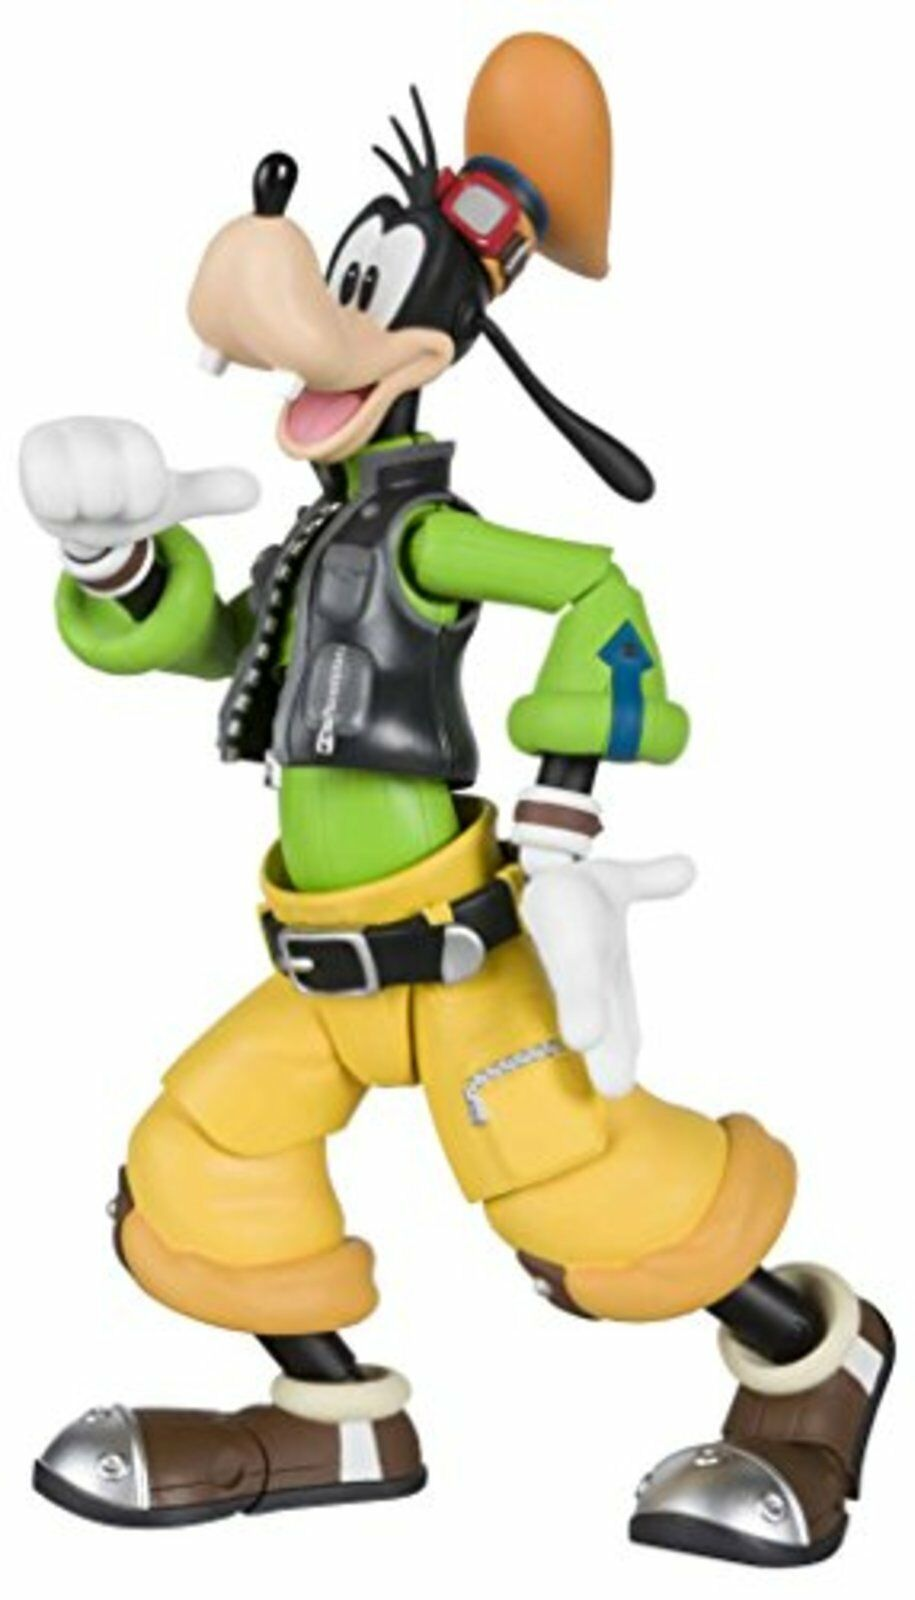 S.H.Figurines Kingdom Hearts II Loufoque PVC Pré-peints Figurine F S W